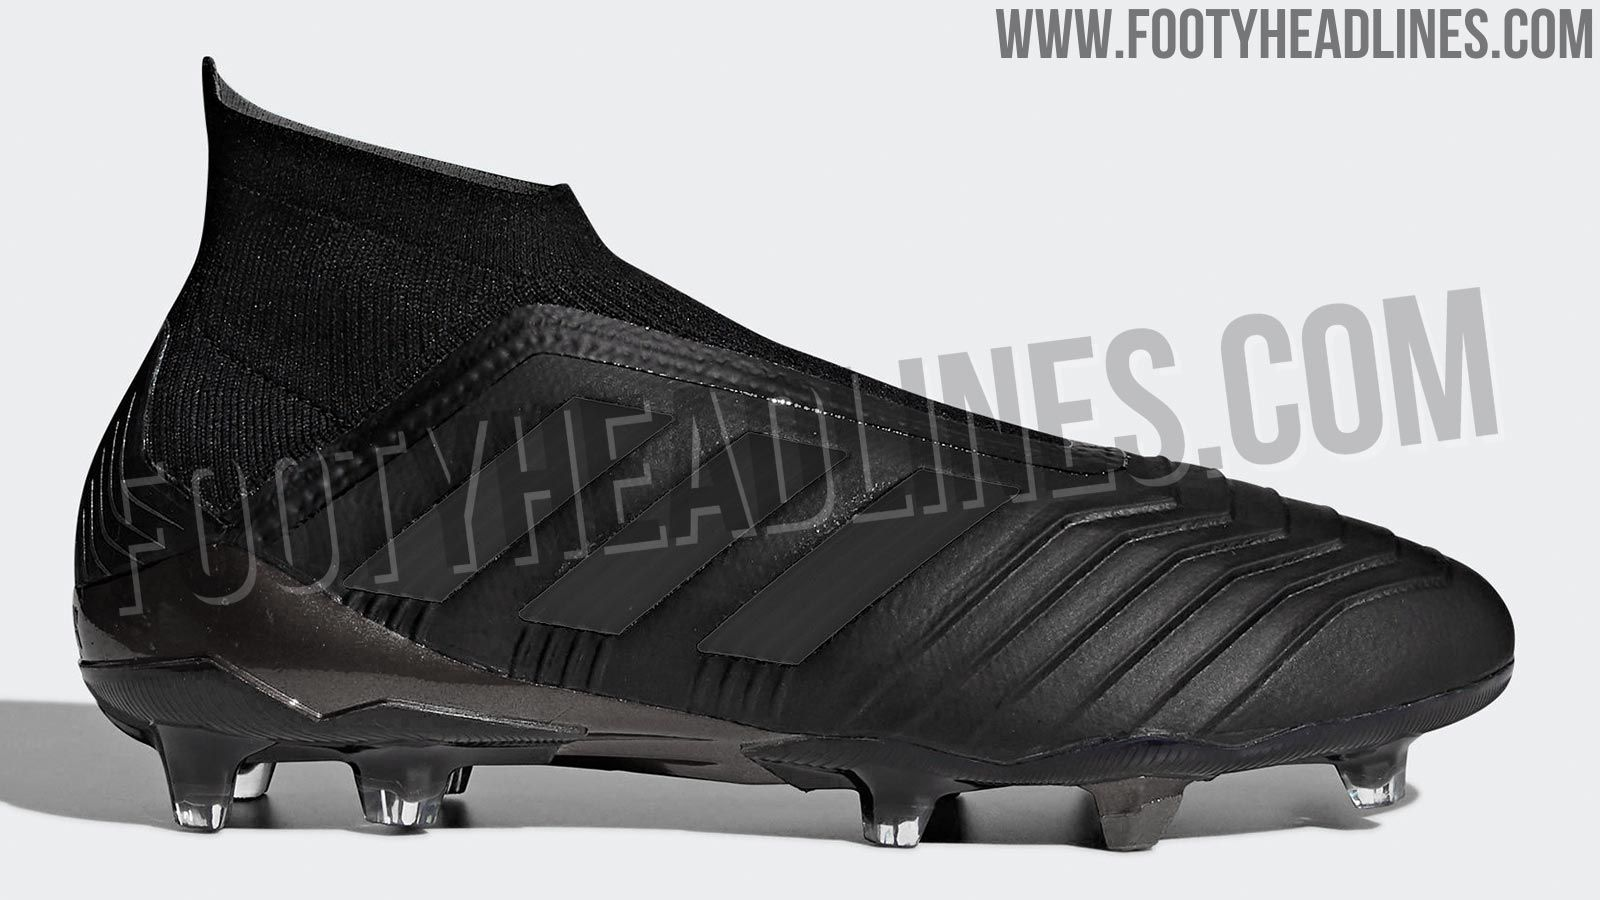 quality design af8c2 5c775 The Adidas Predator 18+ Nitecrawler football boots introduce a stealth look  to the latest iteration of the iconic 3 Stripes model, set for a launch  well ...